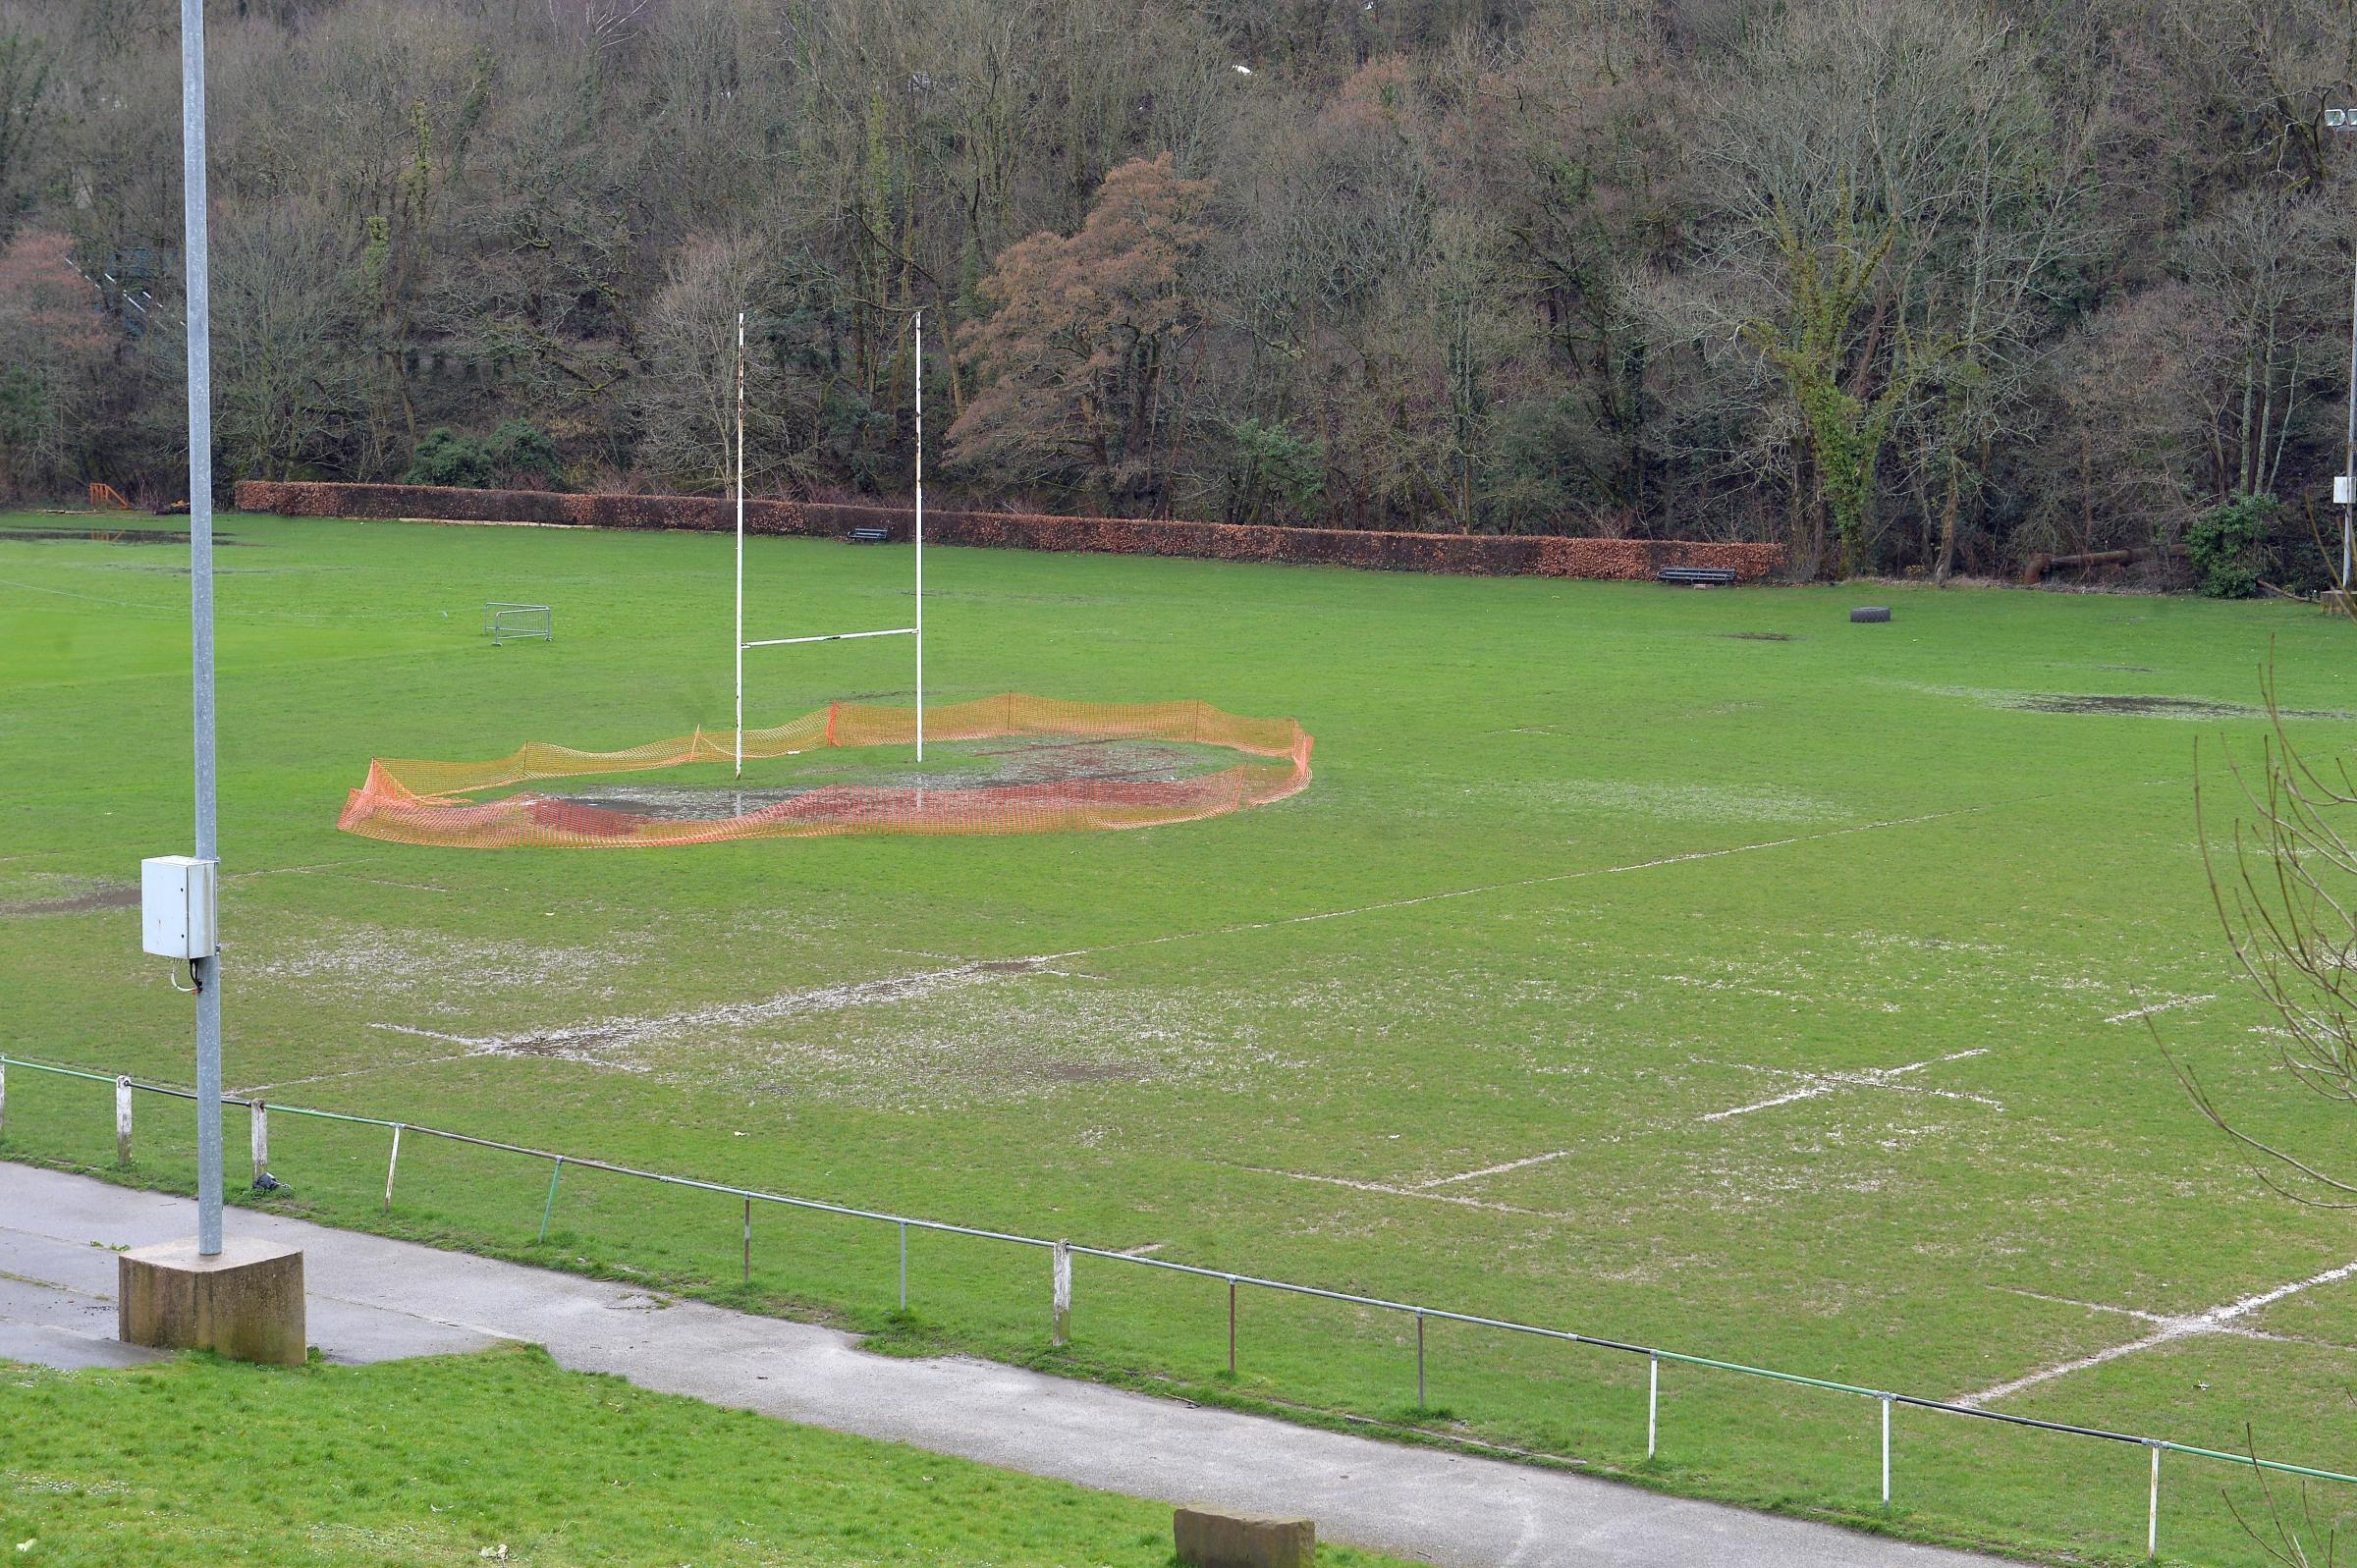 Abercarn RFC left 'embarrassed' as fixtures cancelled after pitch flooded with sewerage